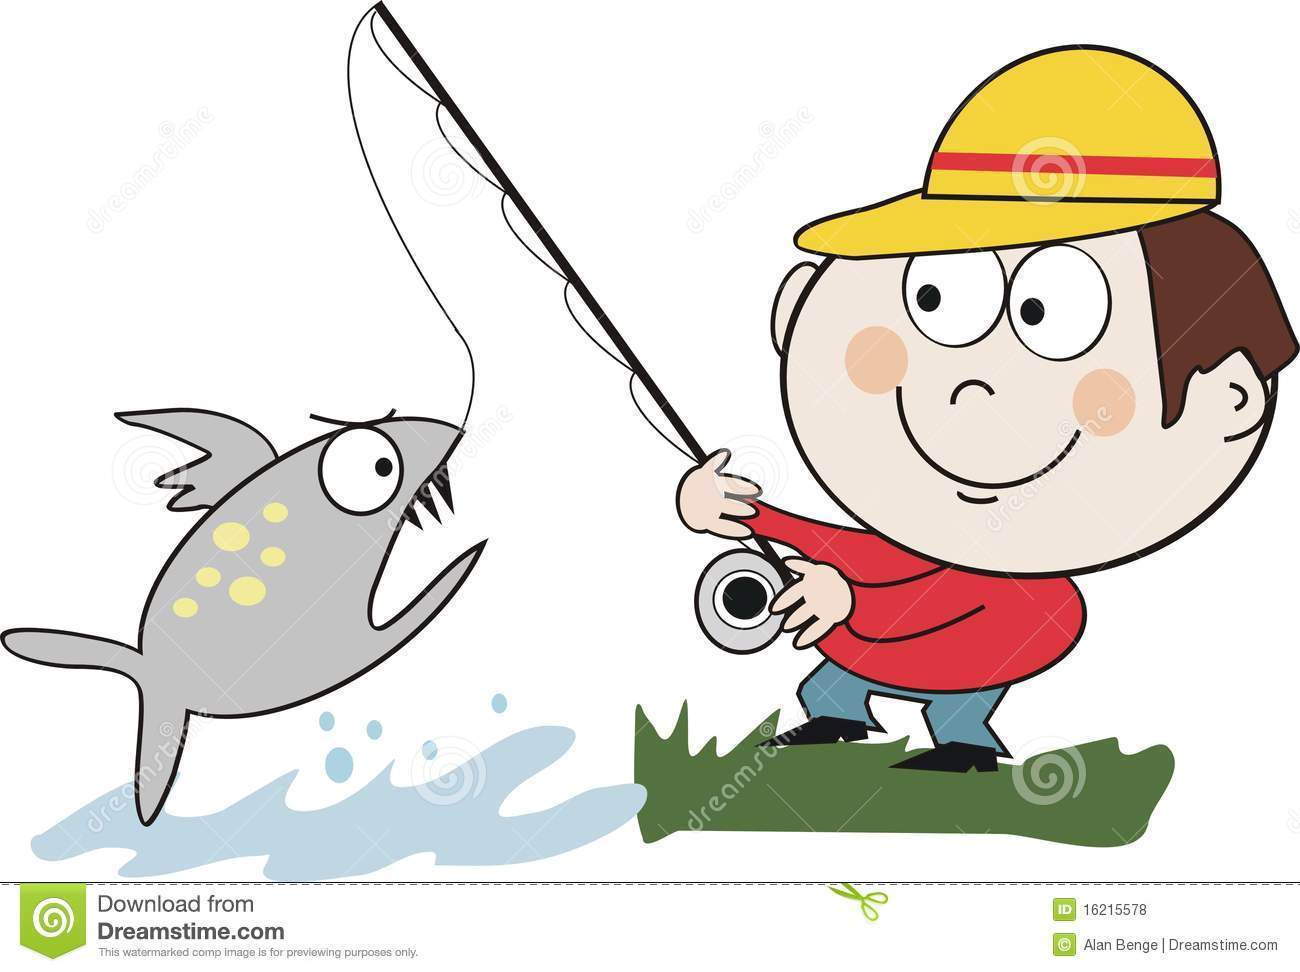 Catching fish clipart 1 » Clipart Portal.